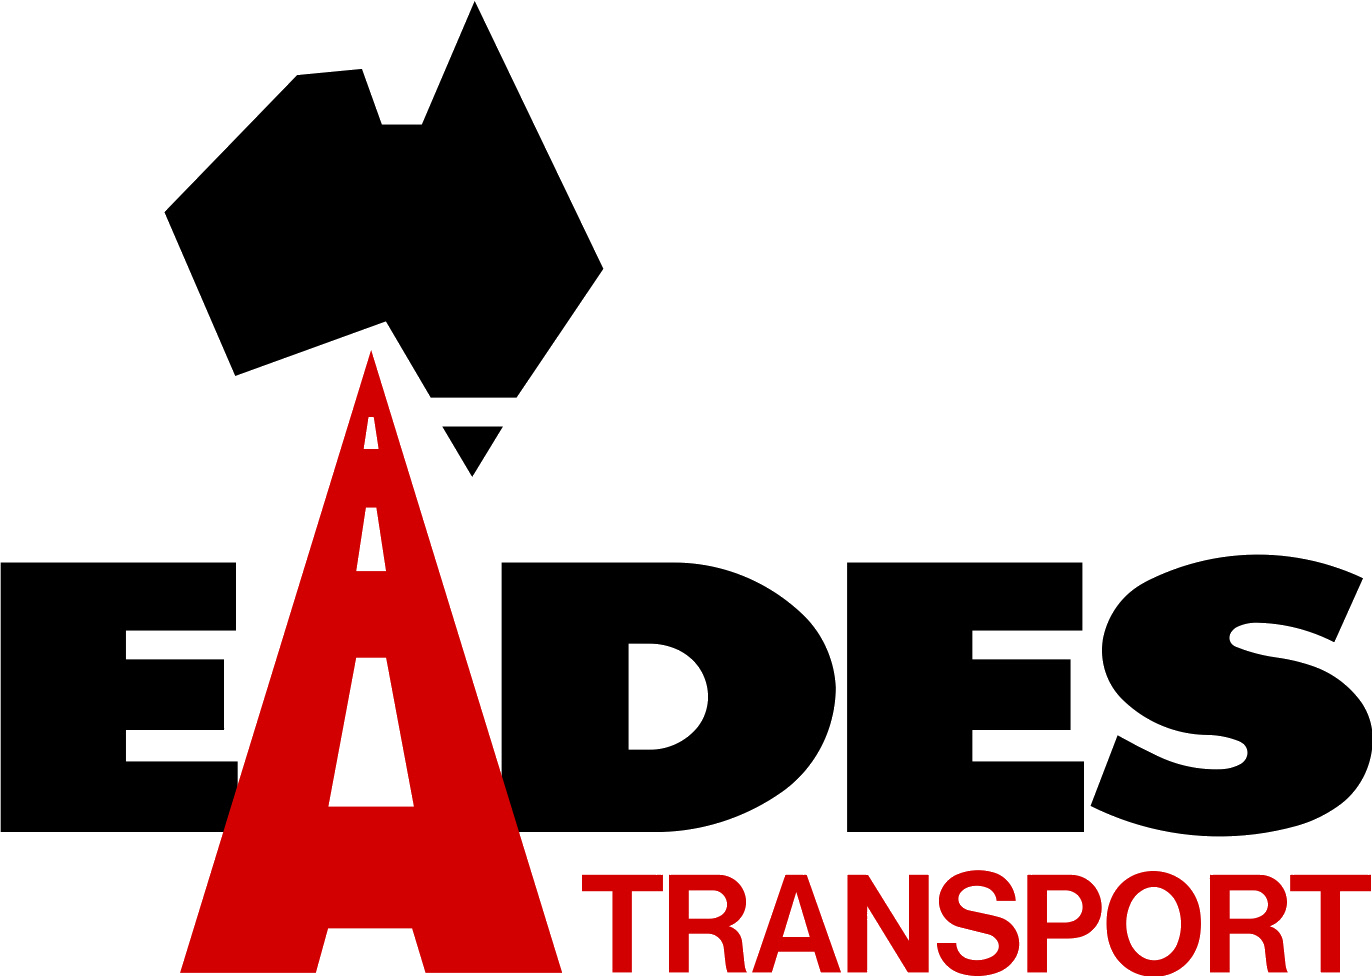 Transportation clipart transportation technology. Eades transport